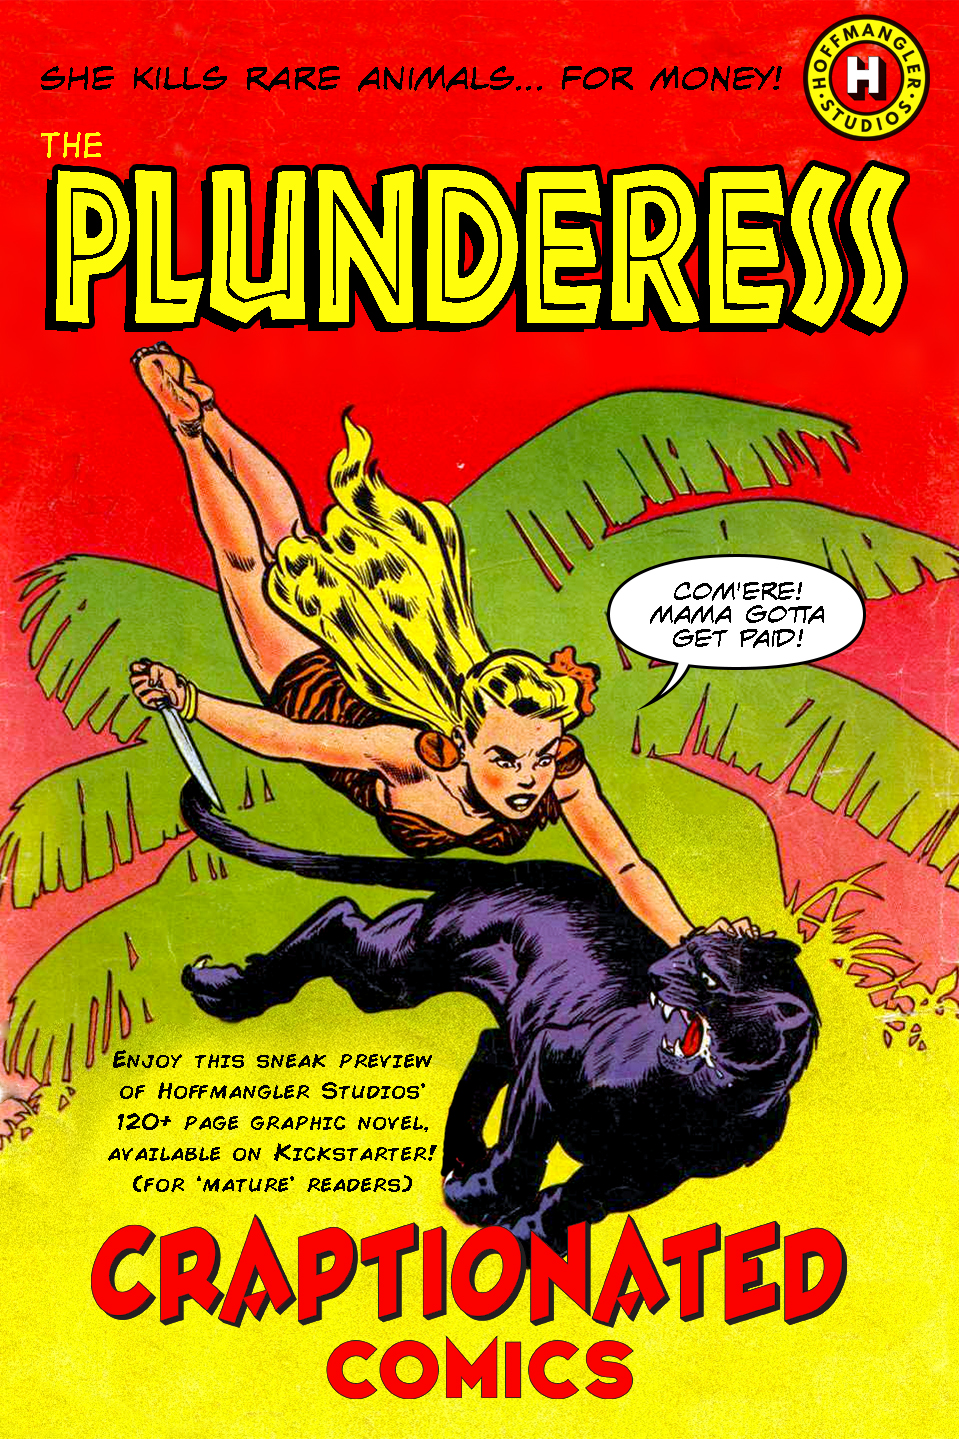 The Plunderess – Cover